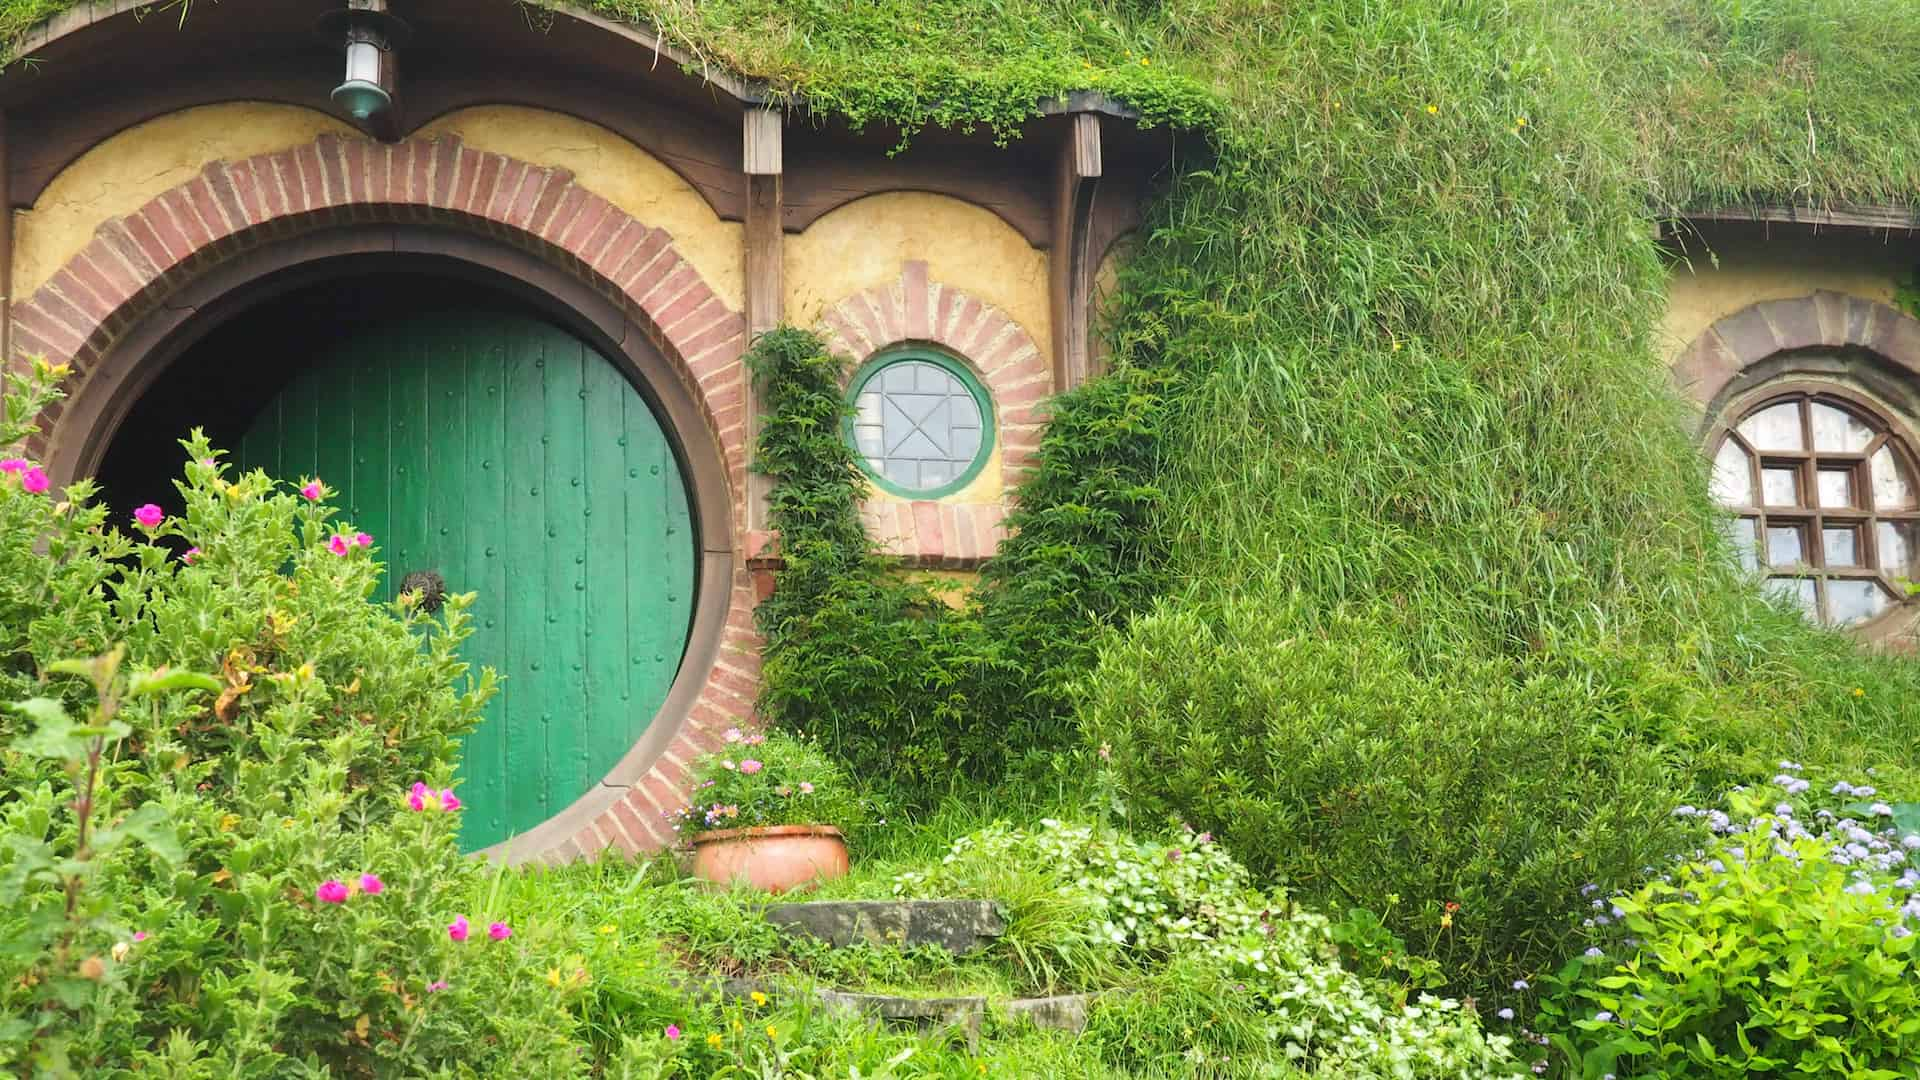 THERE AND BACK AGAIN - A VISIT TO HOBBITON